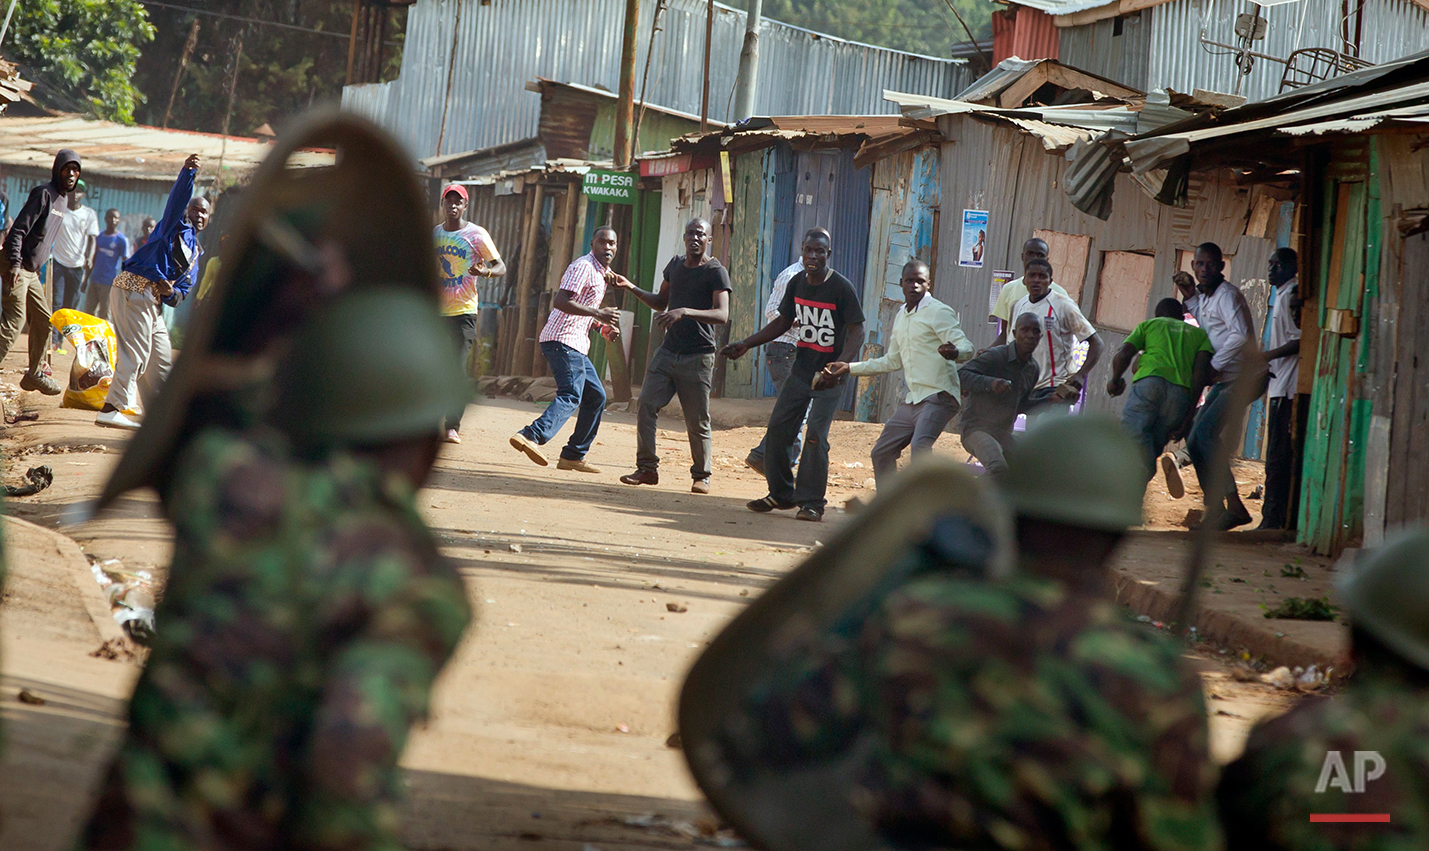 Opposition protesters throw rocks as they engage in running battles with police firing tear gas, in the Kibera slum of Nairobi, Kenya Monday, May 23, 2016. Kenya's police shot, beat and tear gassed opposition demonstrators across the country who tried to gather to call for the electoral commission to be dissolved due to allegations of bias and corruption. (AP Photo/Ben Curtis)